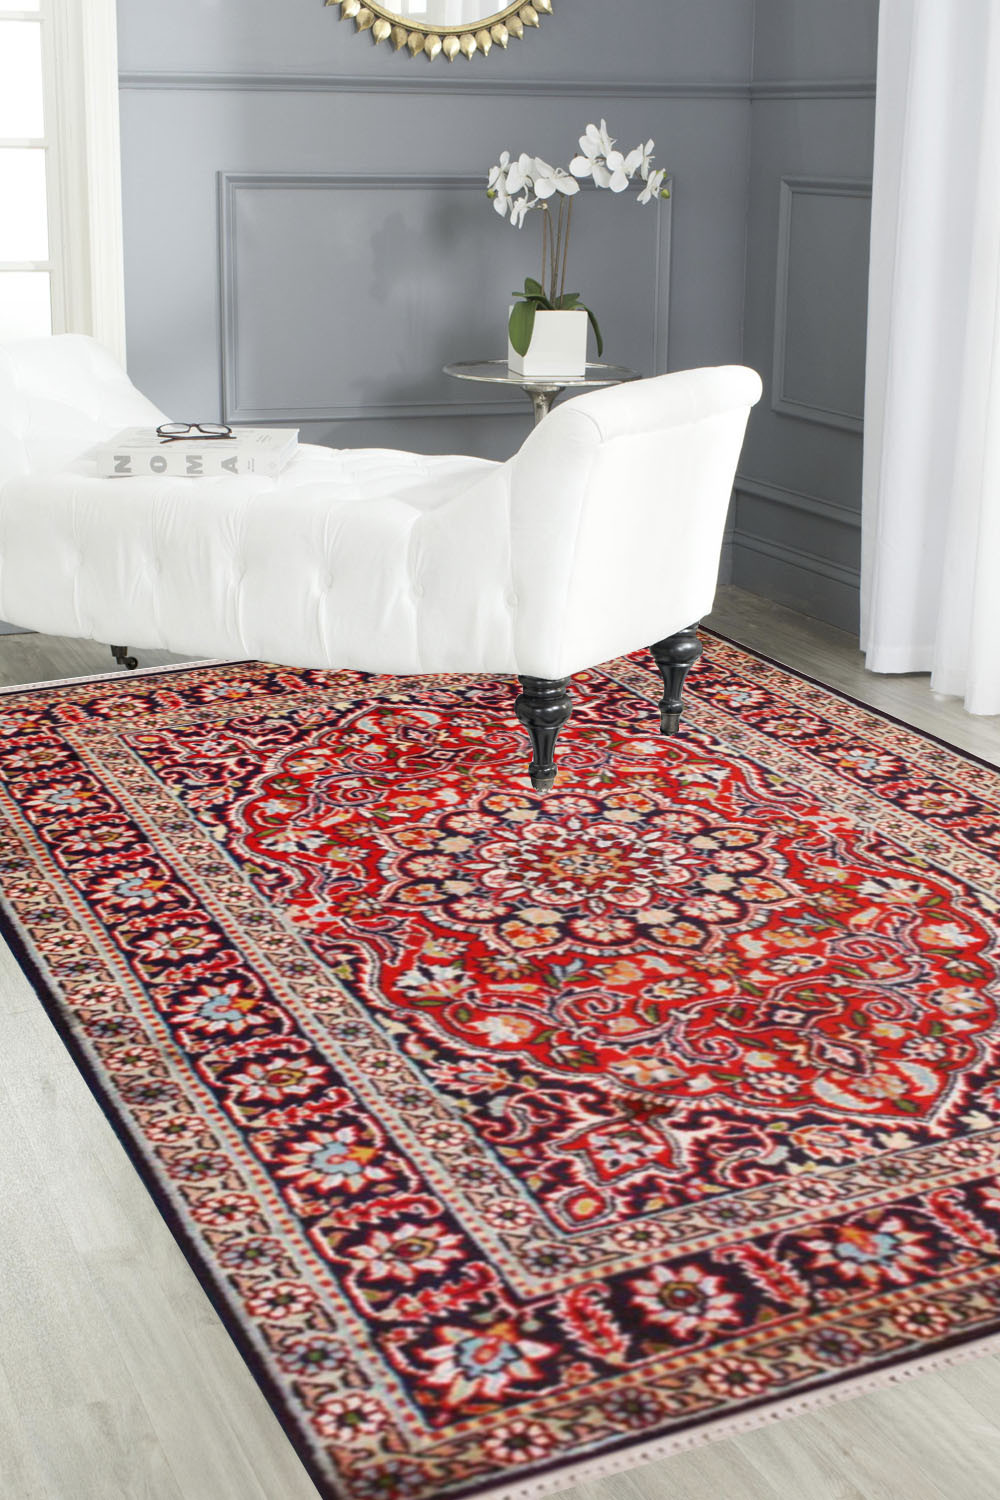 Patte Kashani Carpet Silk Carpets And Rugs Online